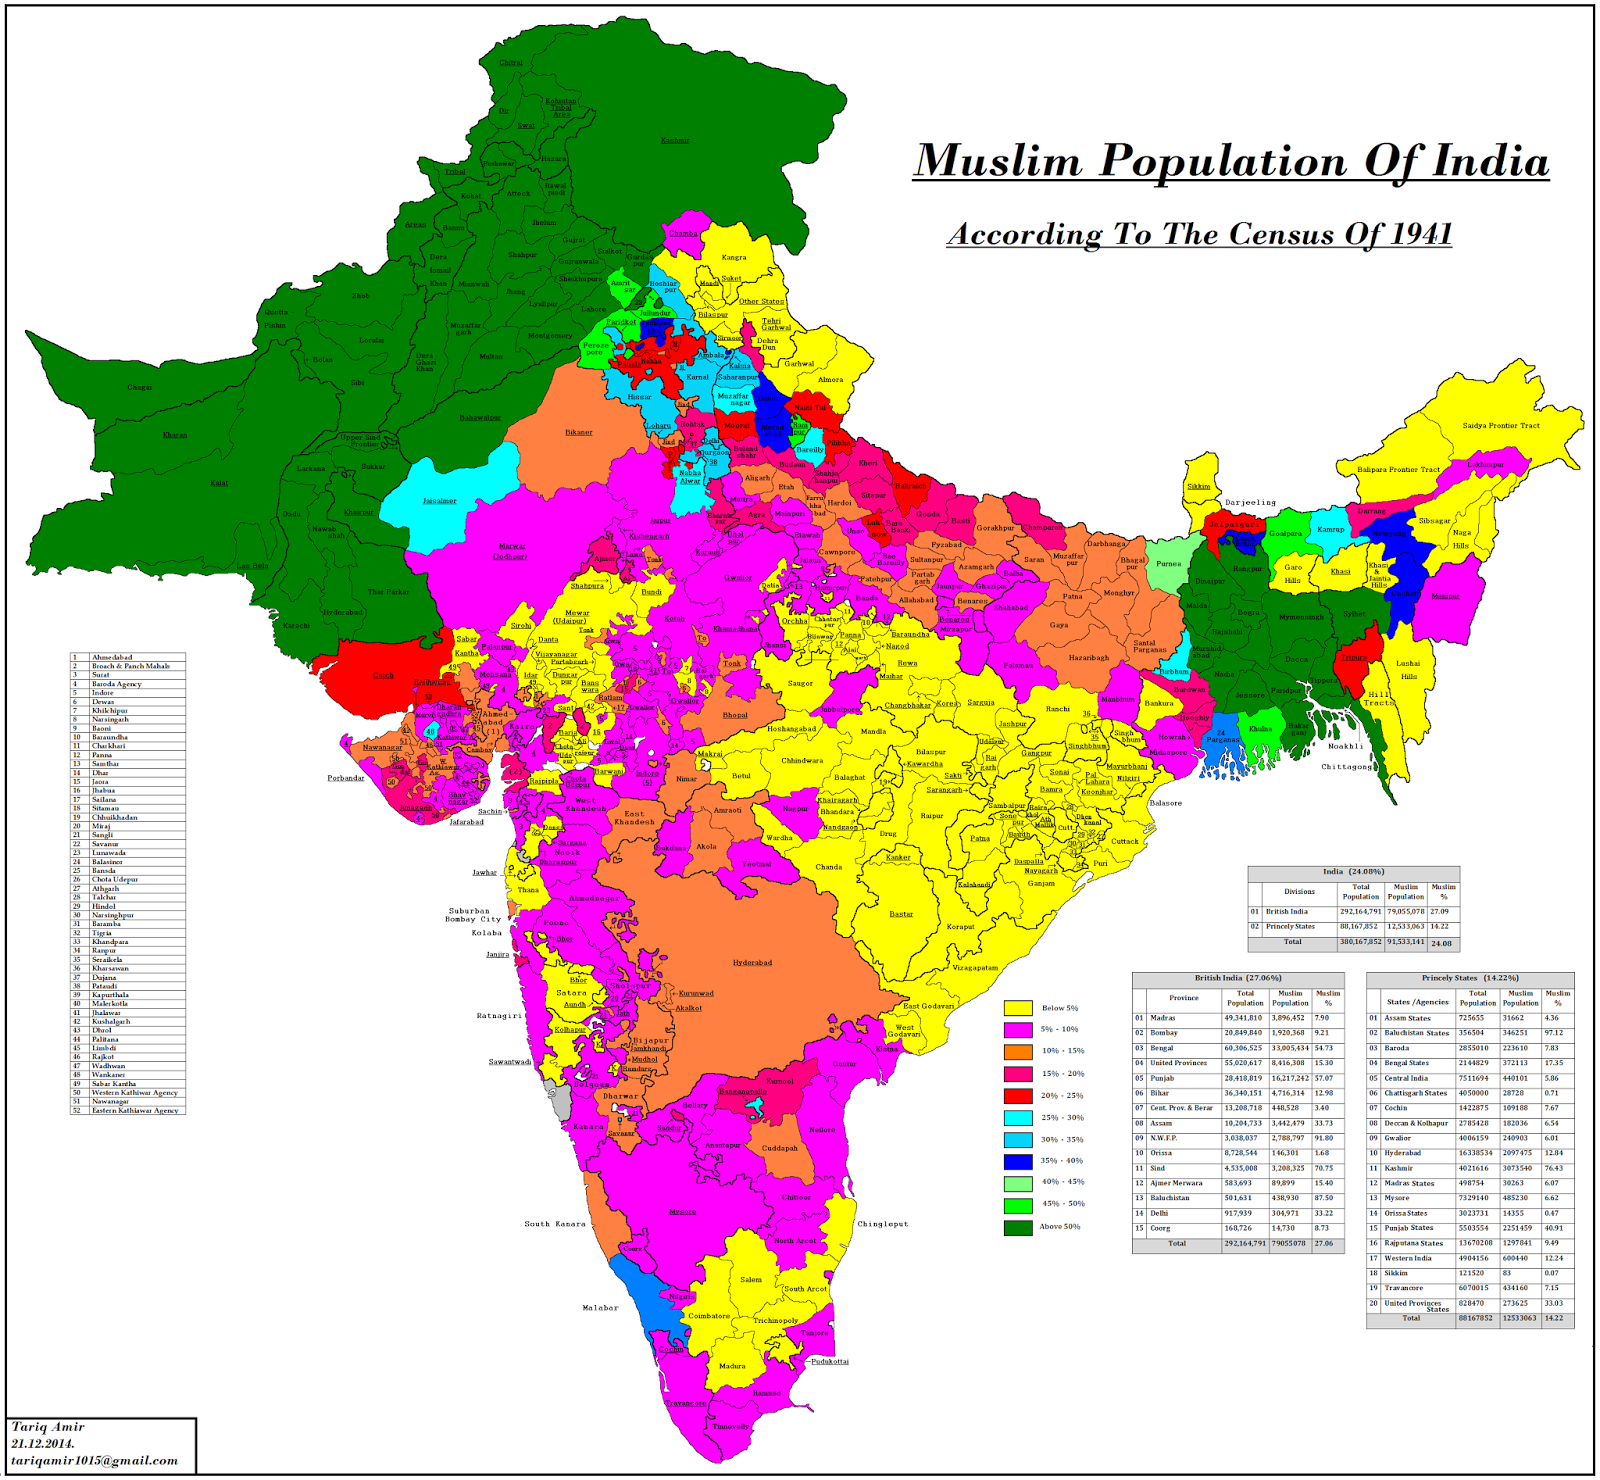 stan Geotagging: Muslim Population Of India: According To The ... on india taj mahal, india bombay, india independence movement, india punjab, india delhi, india harappan civilization, india british raj, india biggest cities, india thar desert, india map pre-1947, india economy,